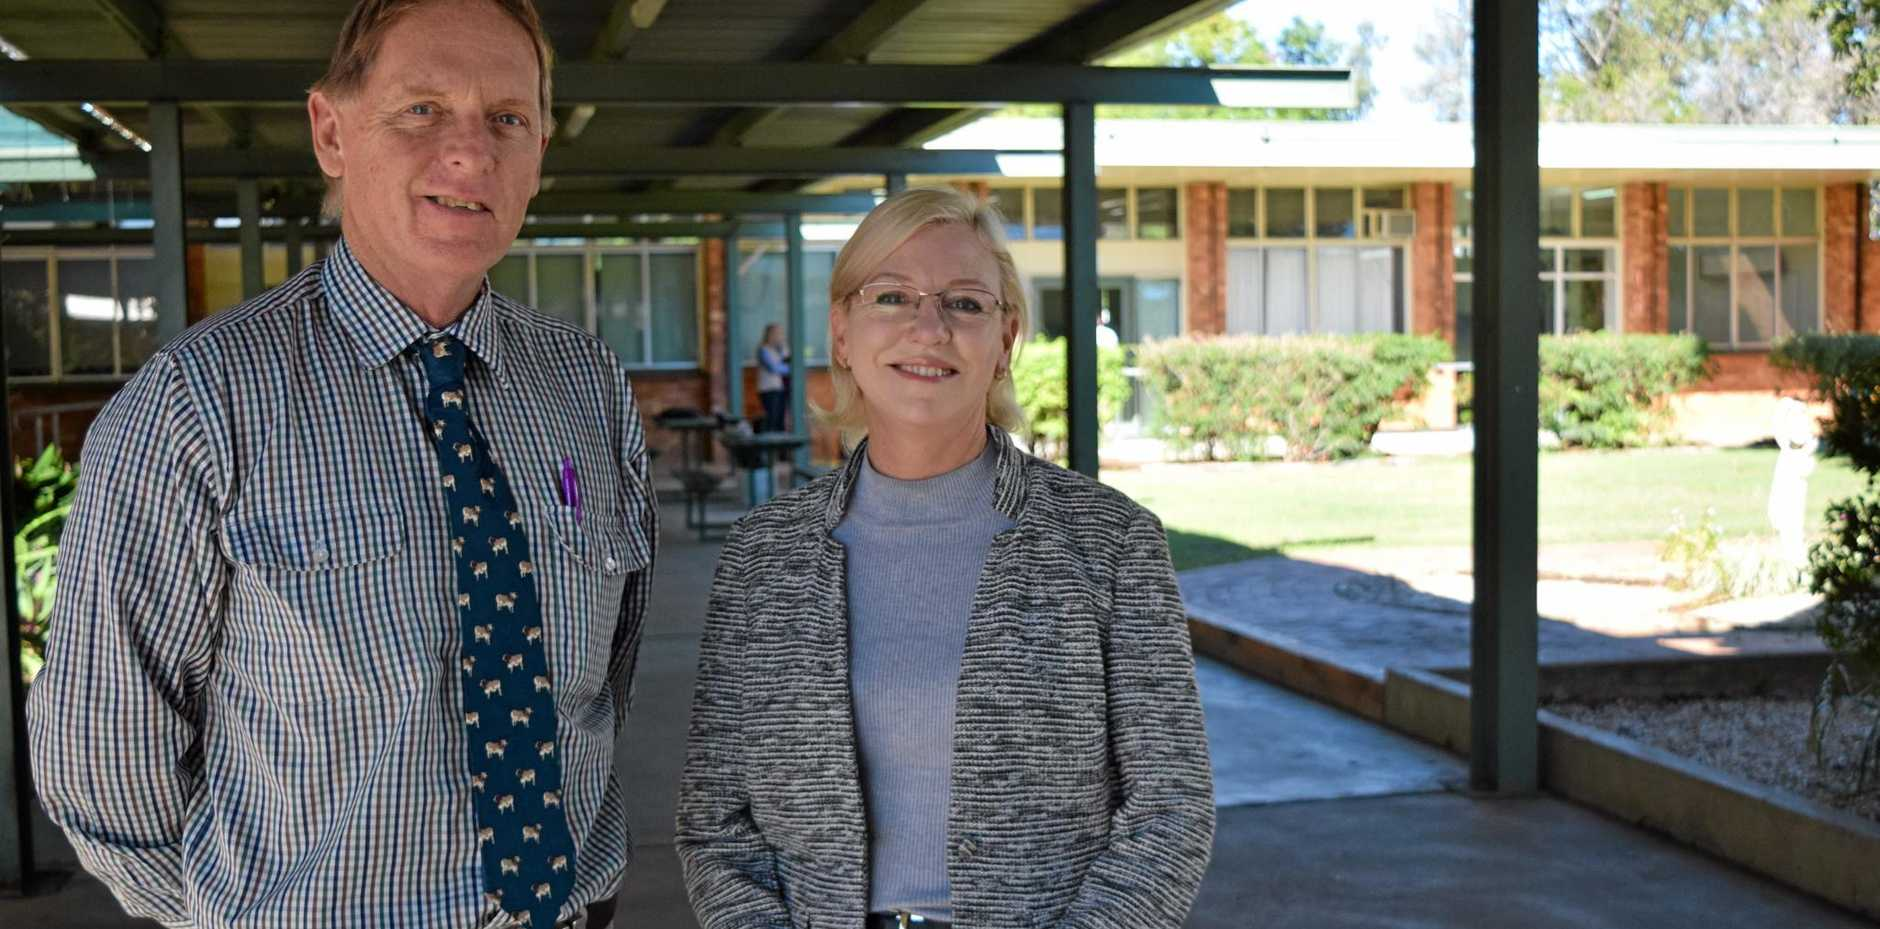 STEPPING UP: Queensland Agricultural Training College's new CEO Mark Tobin with Queensland Agricultural Minister Leanne Donaldson.